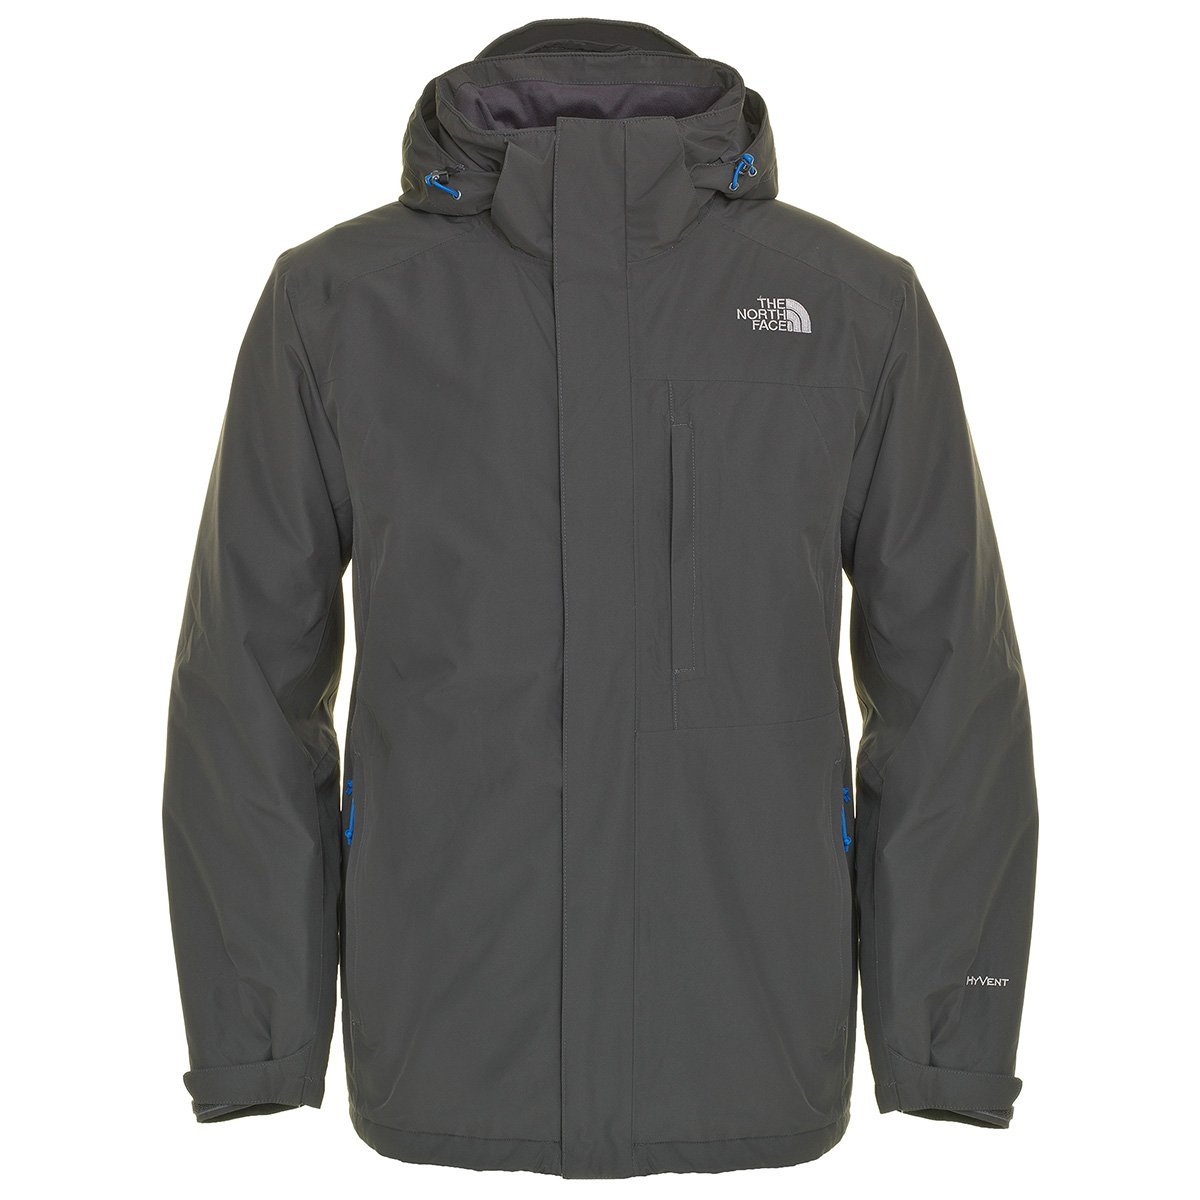 Herren Snowboard Jacke The North Face Ptk Jacket